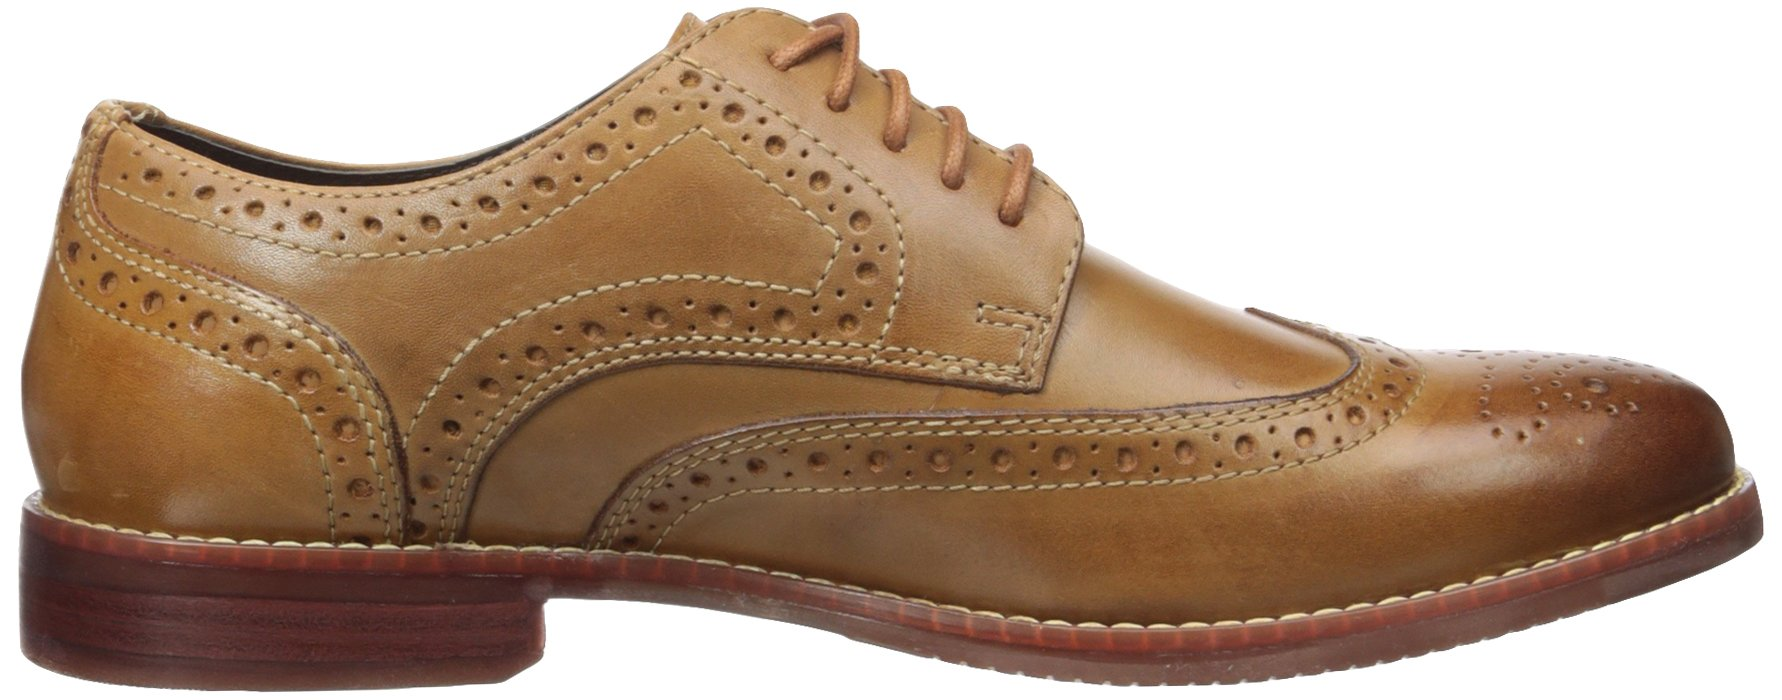 Rockport Men's Style Purpose Wing Tip Tan- 6.5 2w Us-6.5 W by Rockport (Image #7)